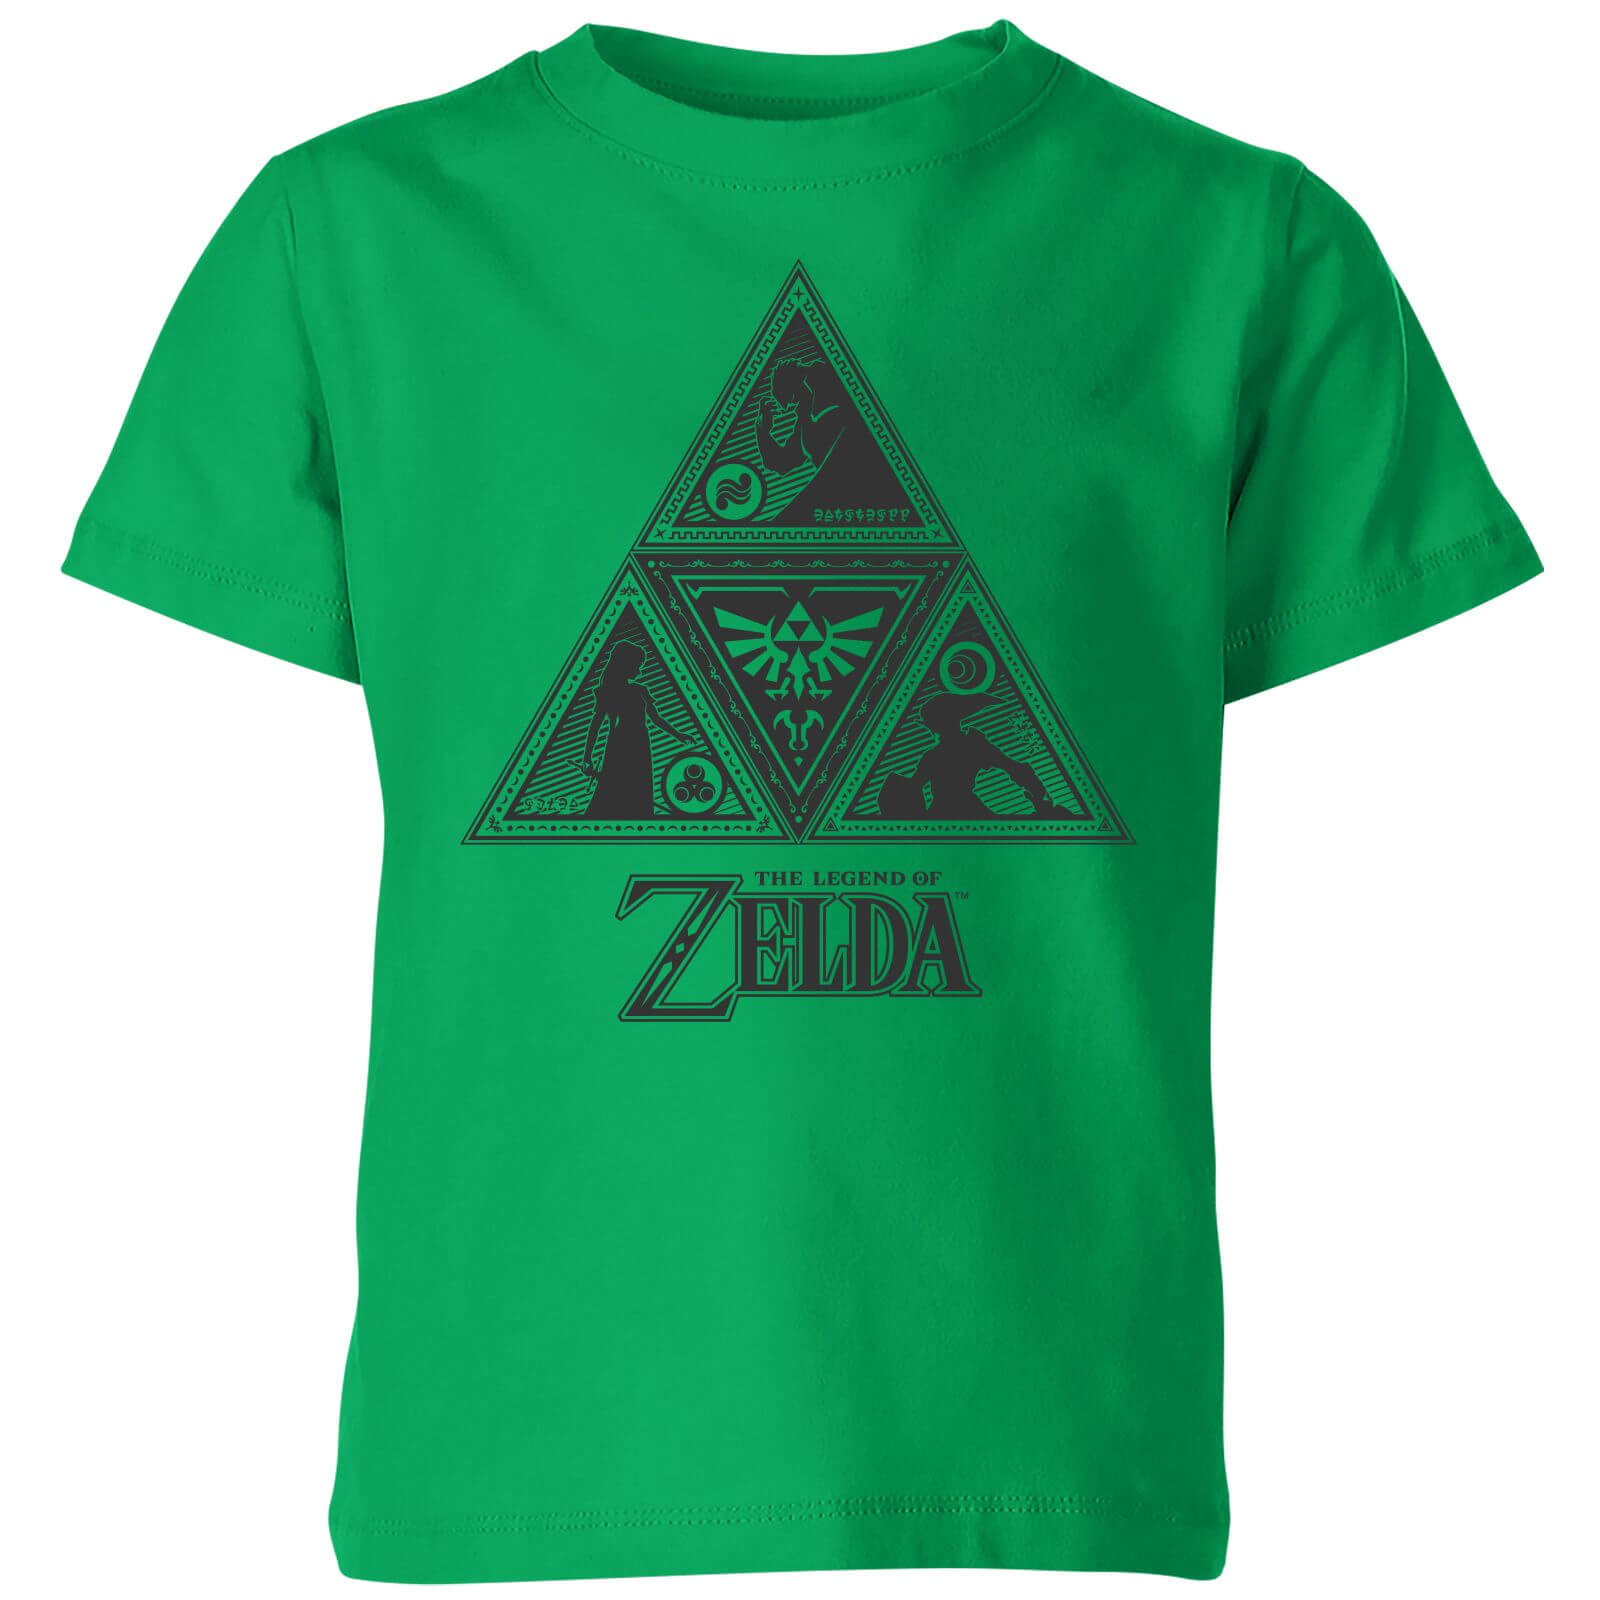 Nintendo The Legend Of Zelda Triforce Kids